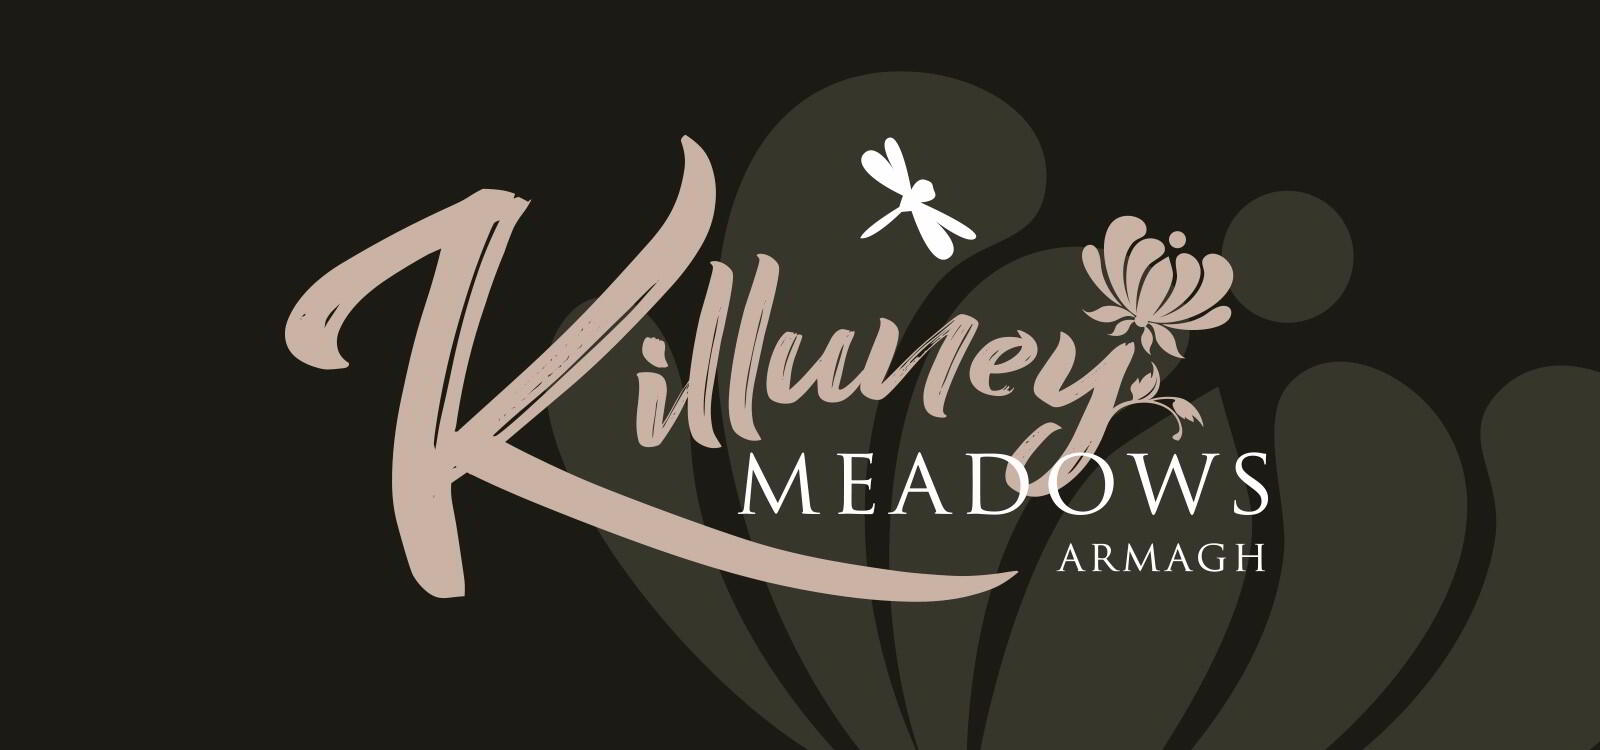 Photo 1 of Killuney Meadows, Armagh